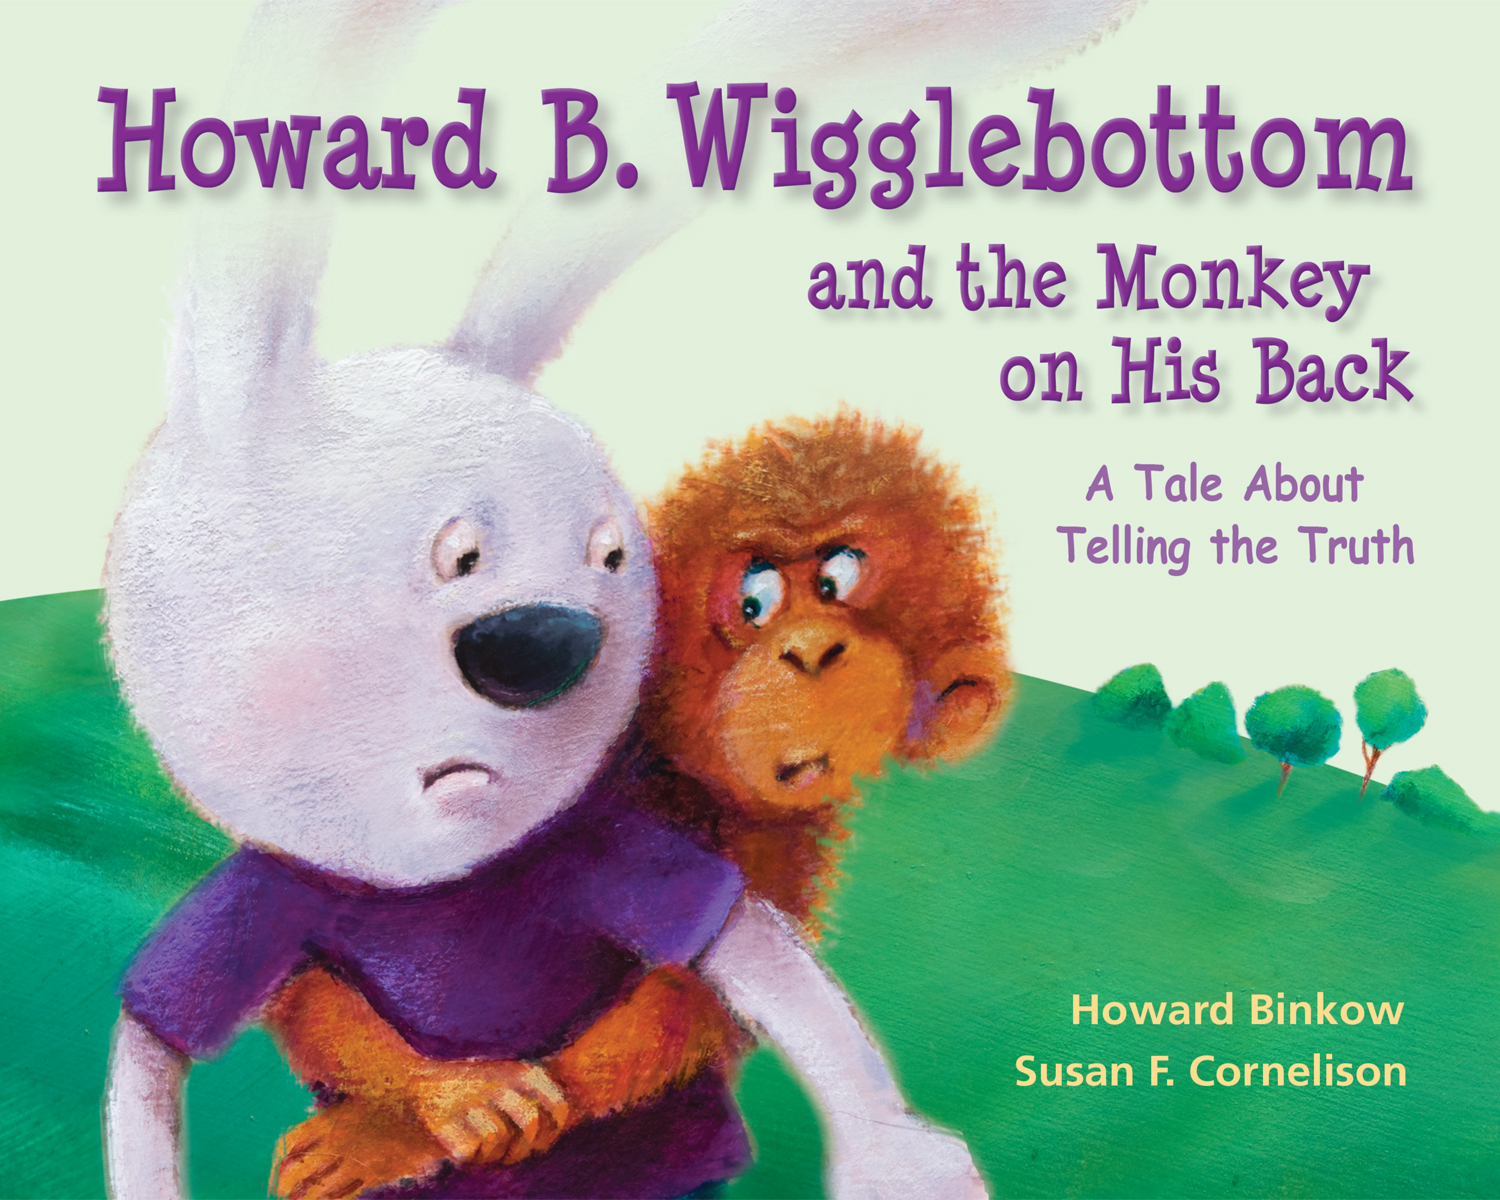 Howard B. Wigglebottom and the Monkey on His Back